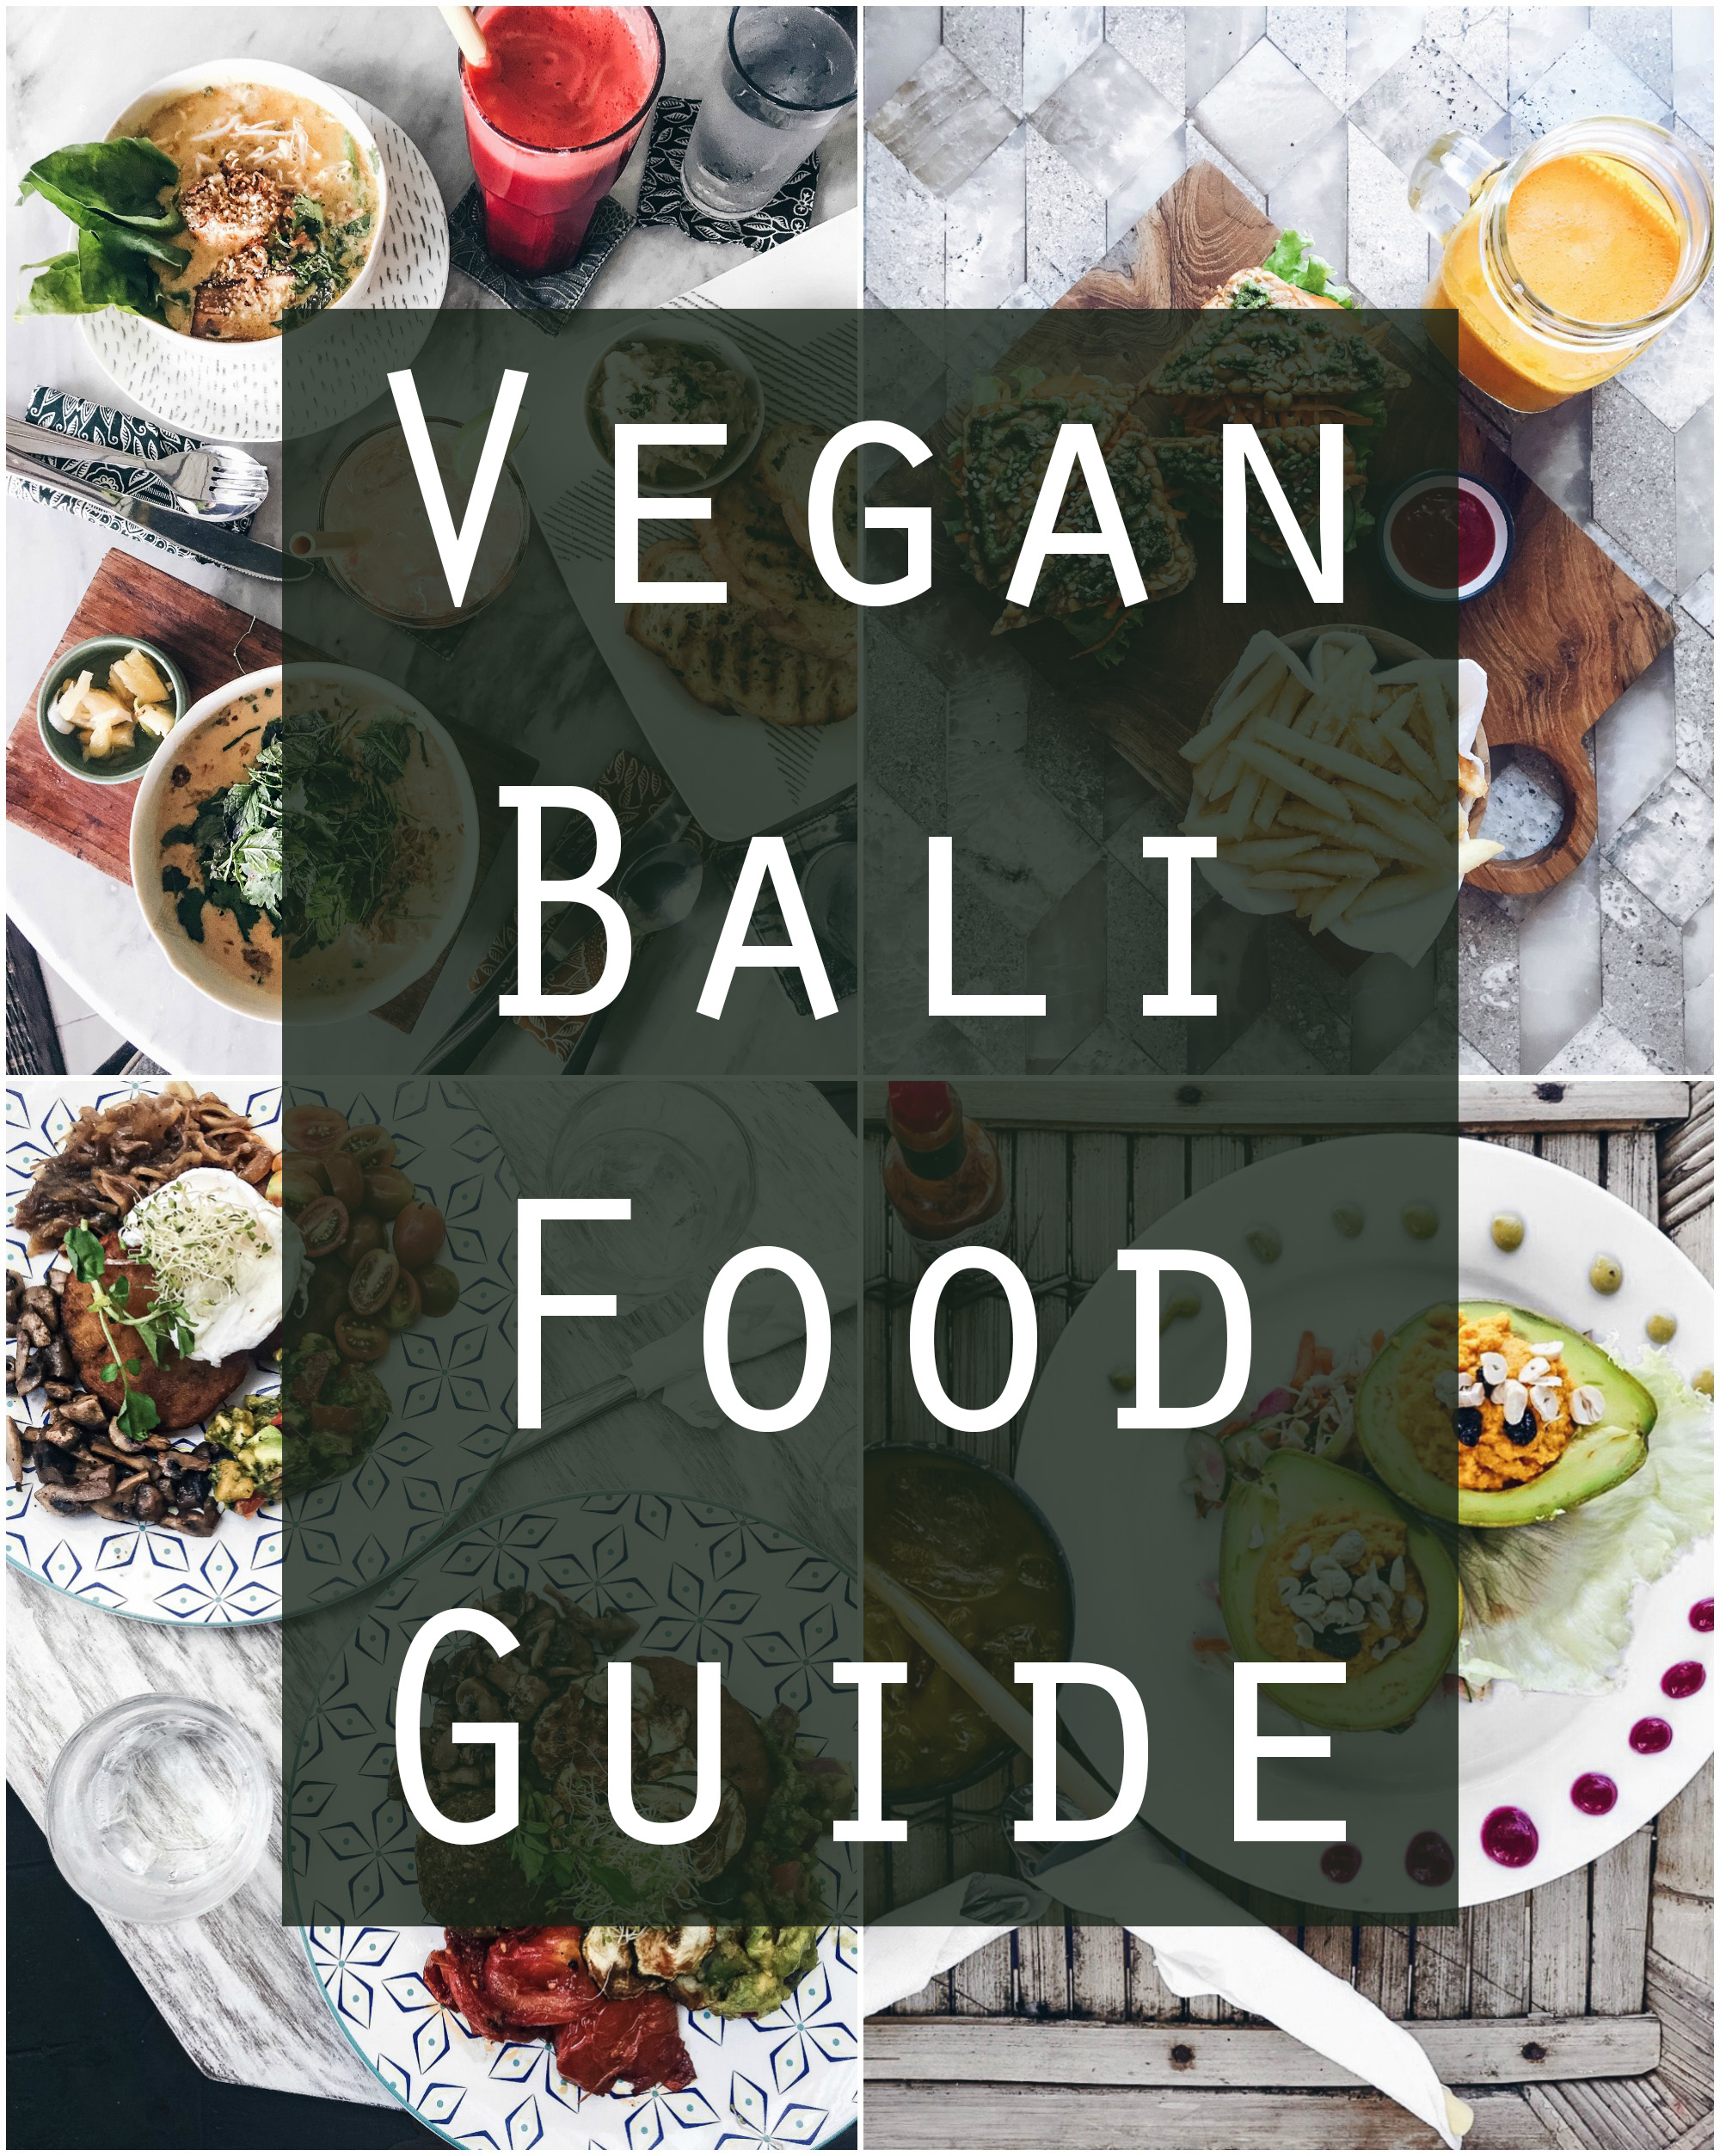 Bali VEGAN FOOD GUIDE